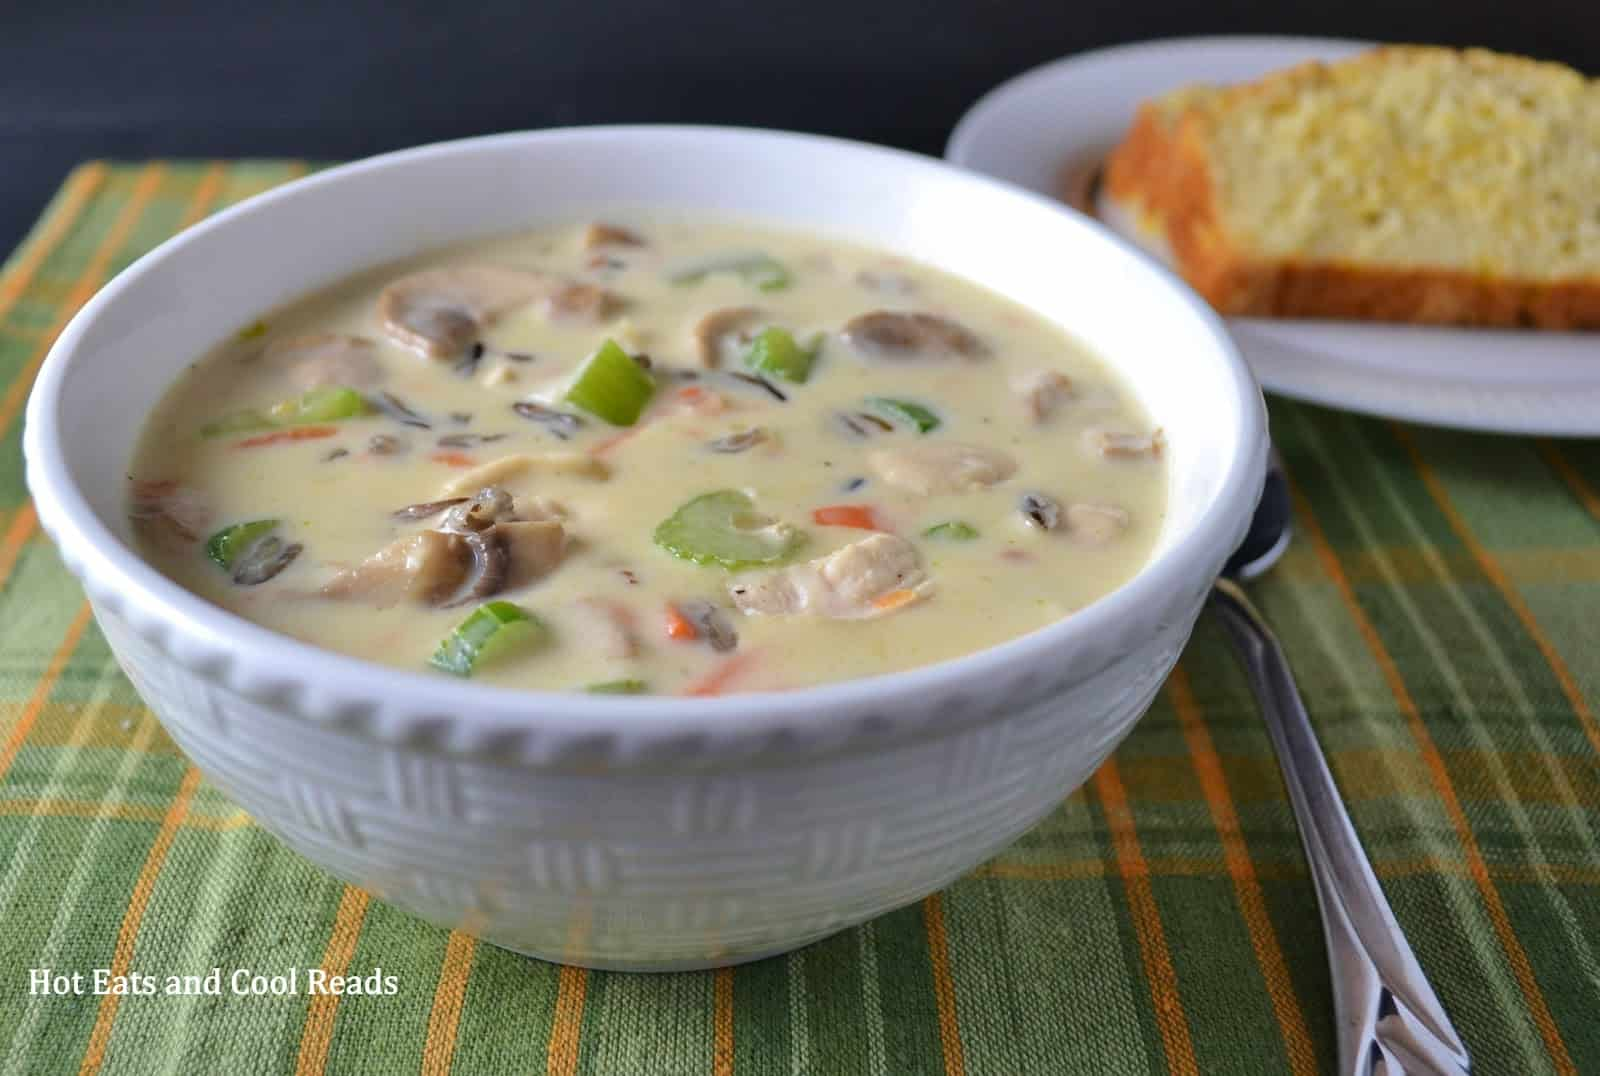 Homemade chicken and wild rice soup